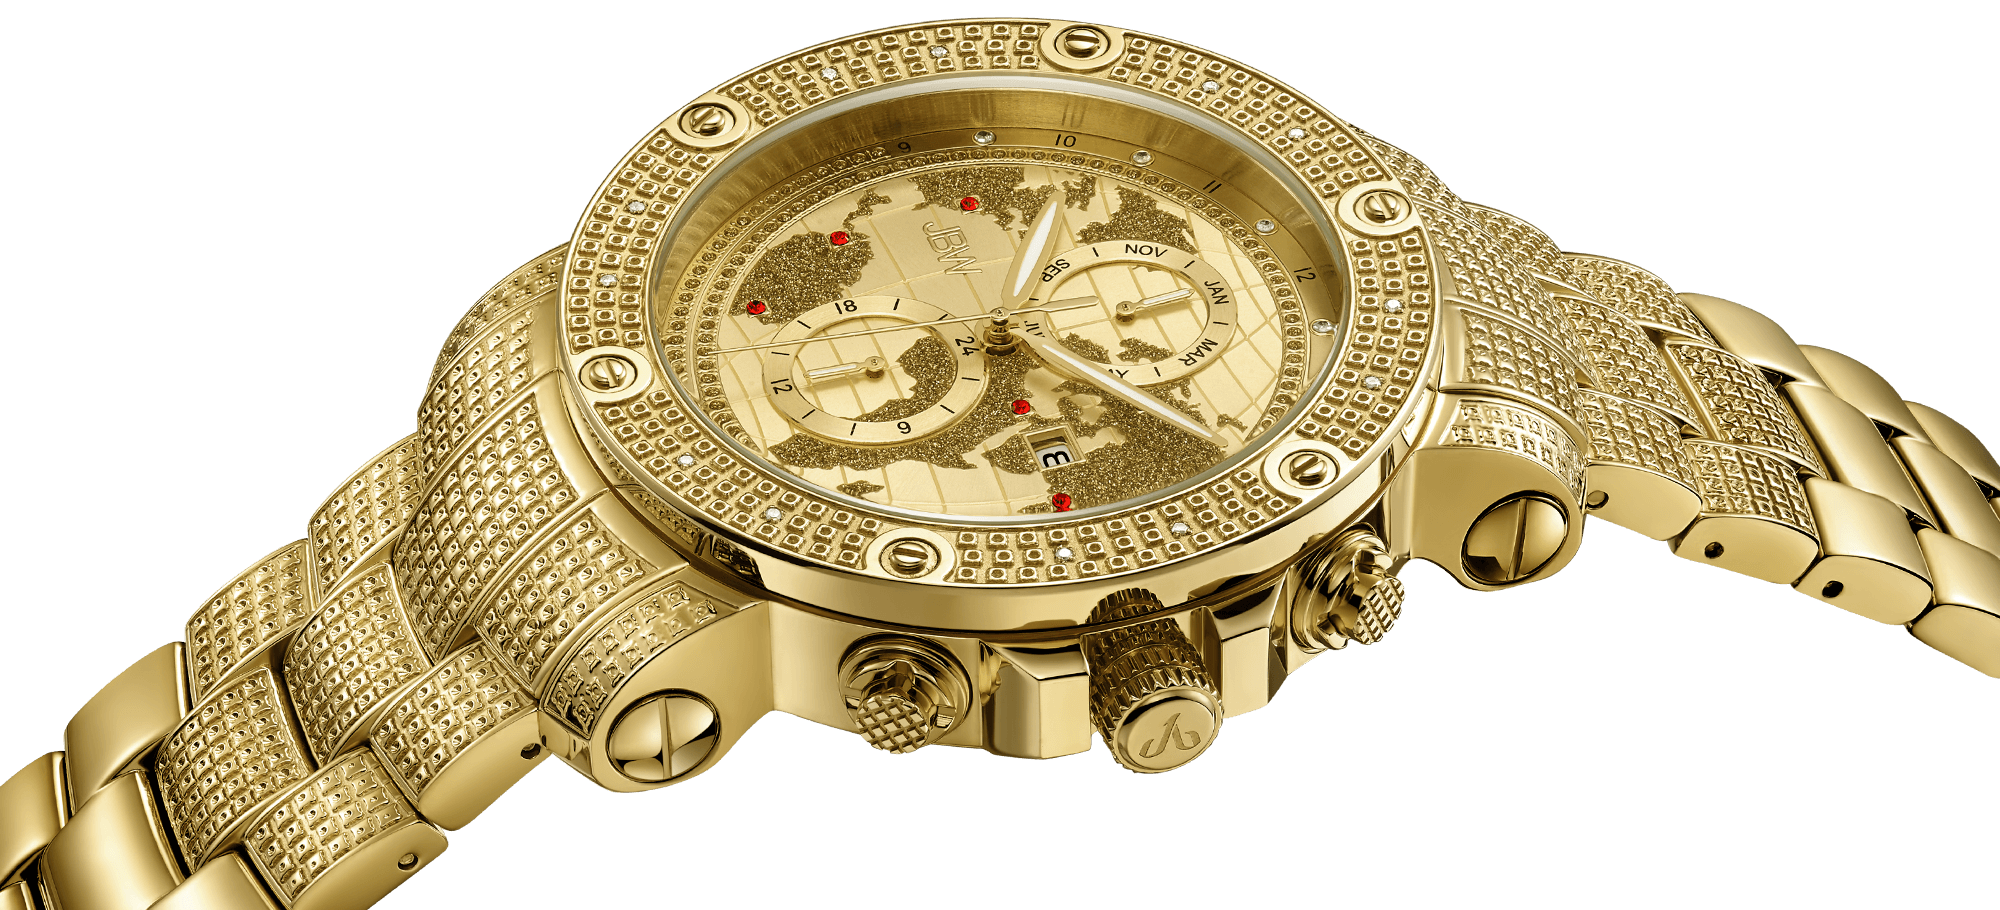 jbw-veyron-j6360c-gold-diamond-watch-hero